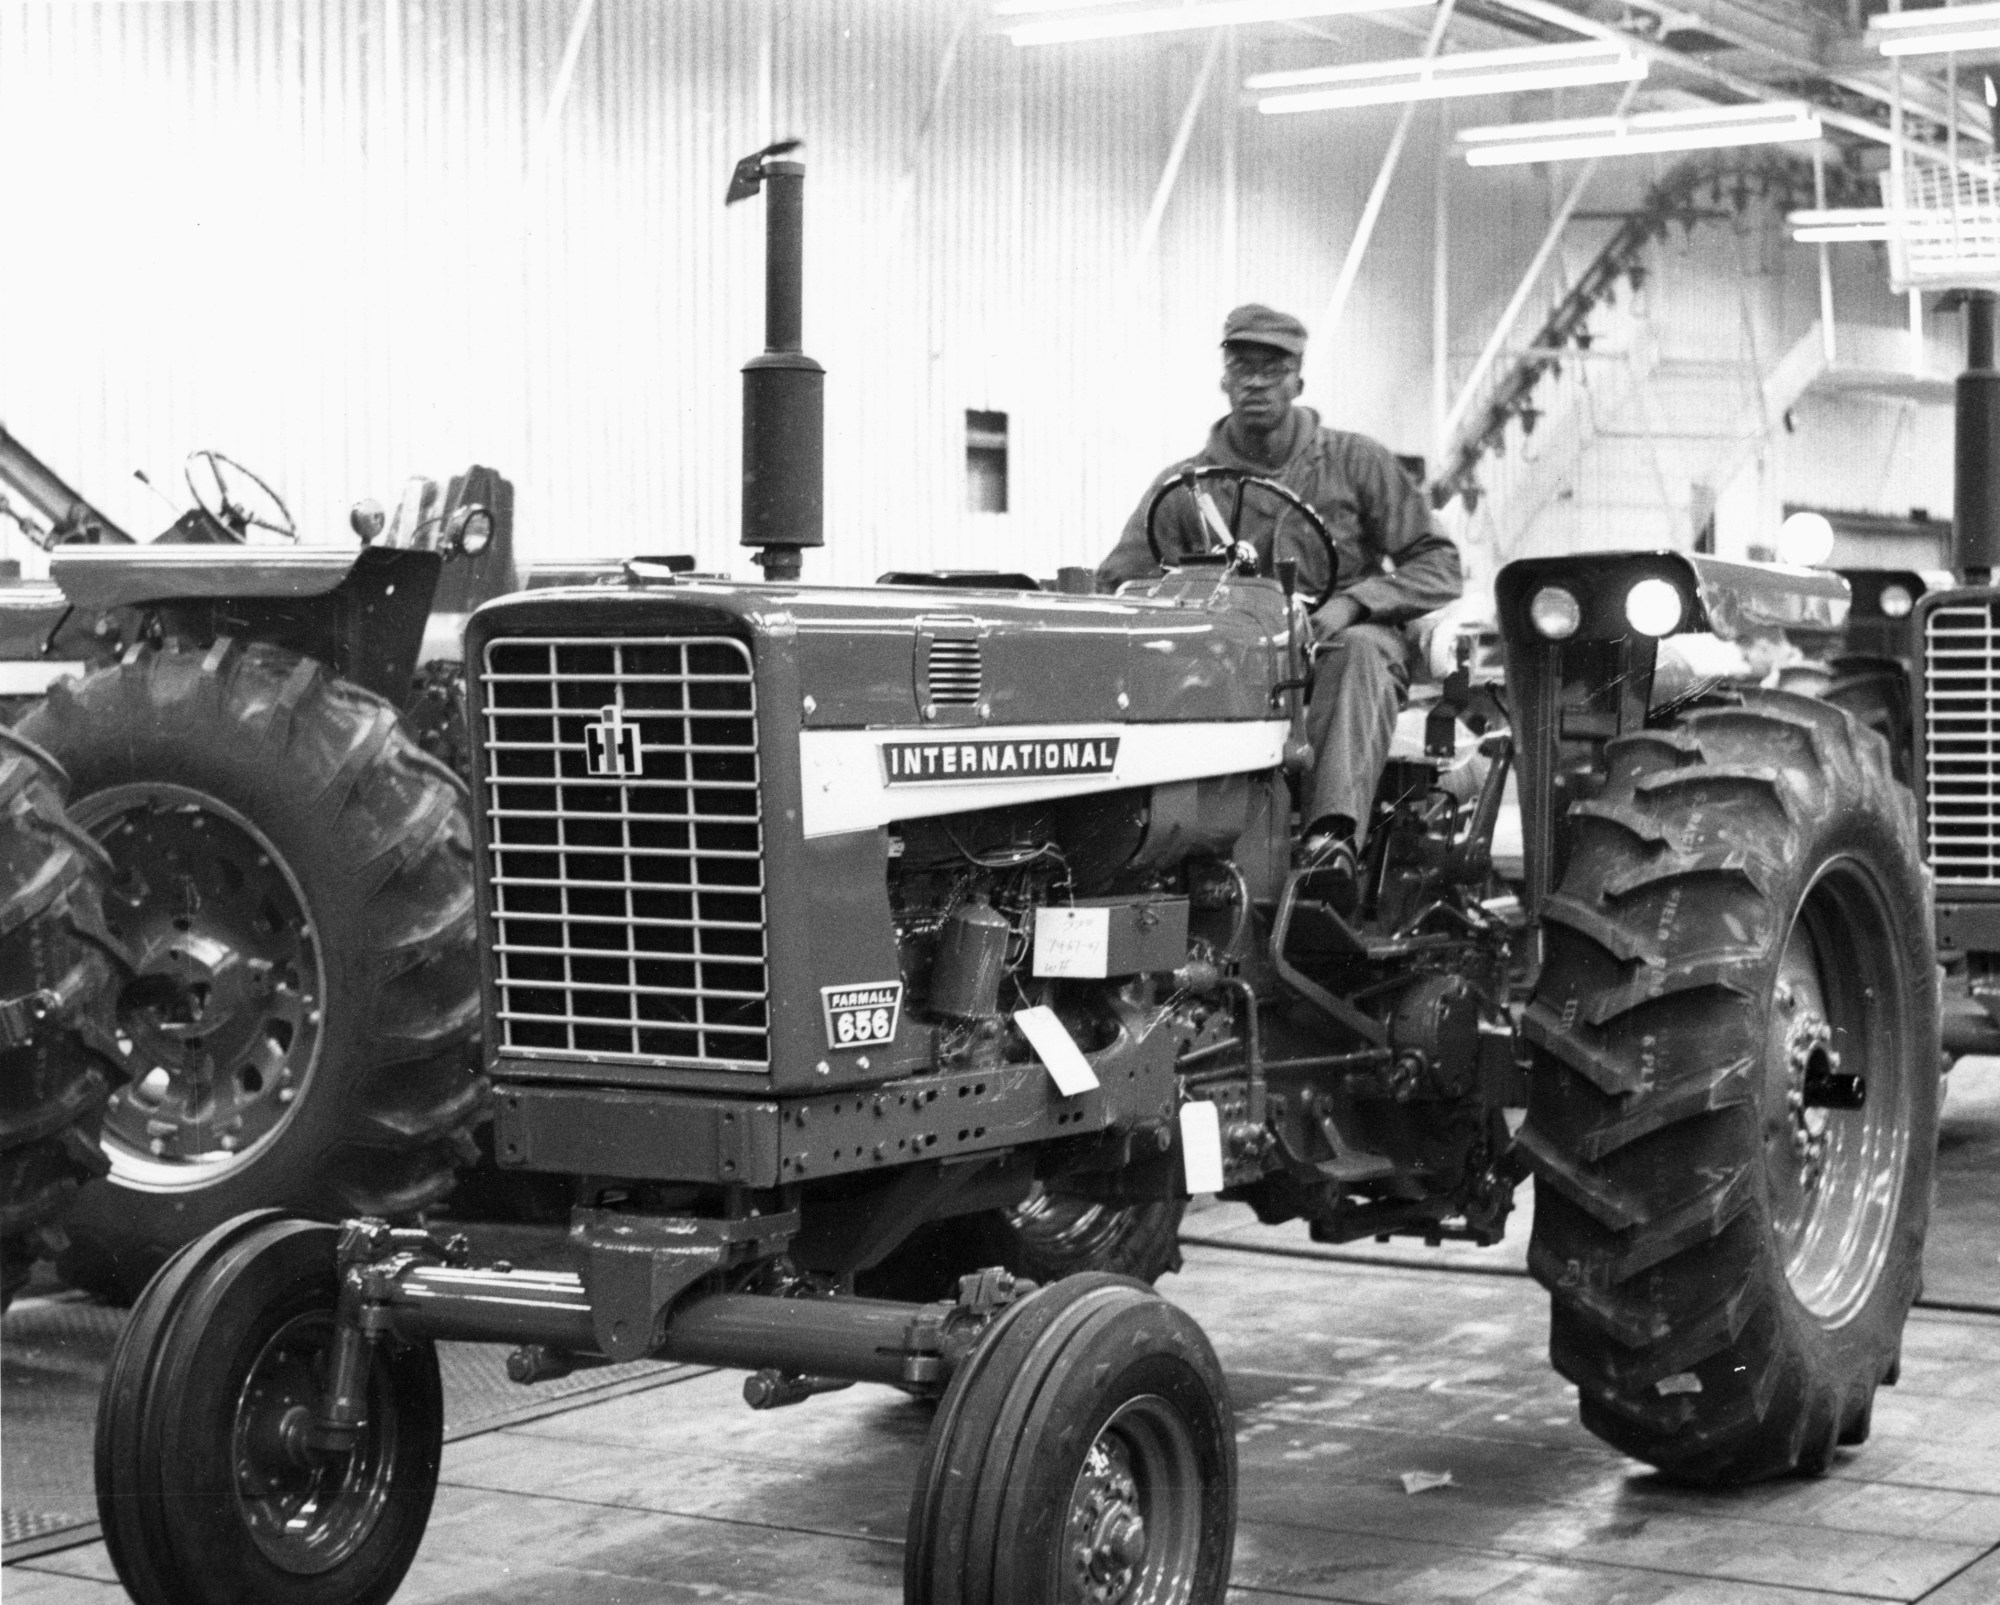 hight resolution of a worker drives a later model farmall 656 off the line on november 15 1968 note that the side panel sports the international label and farmall has